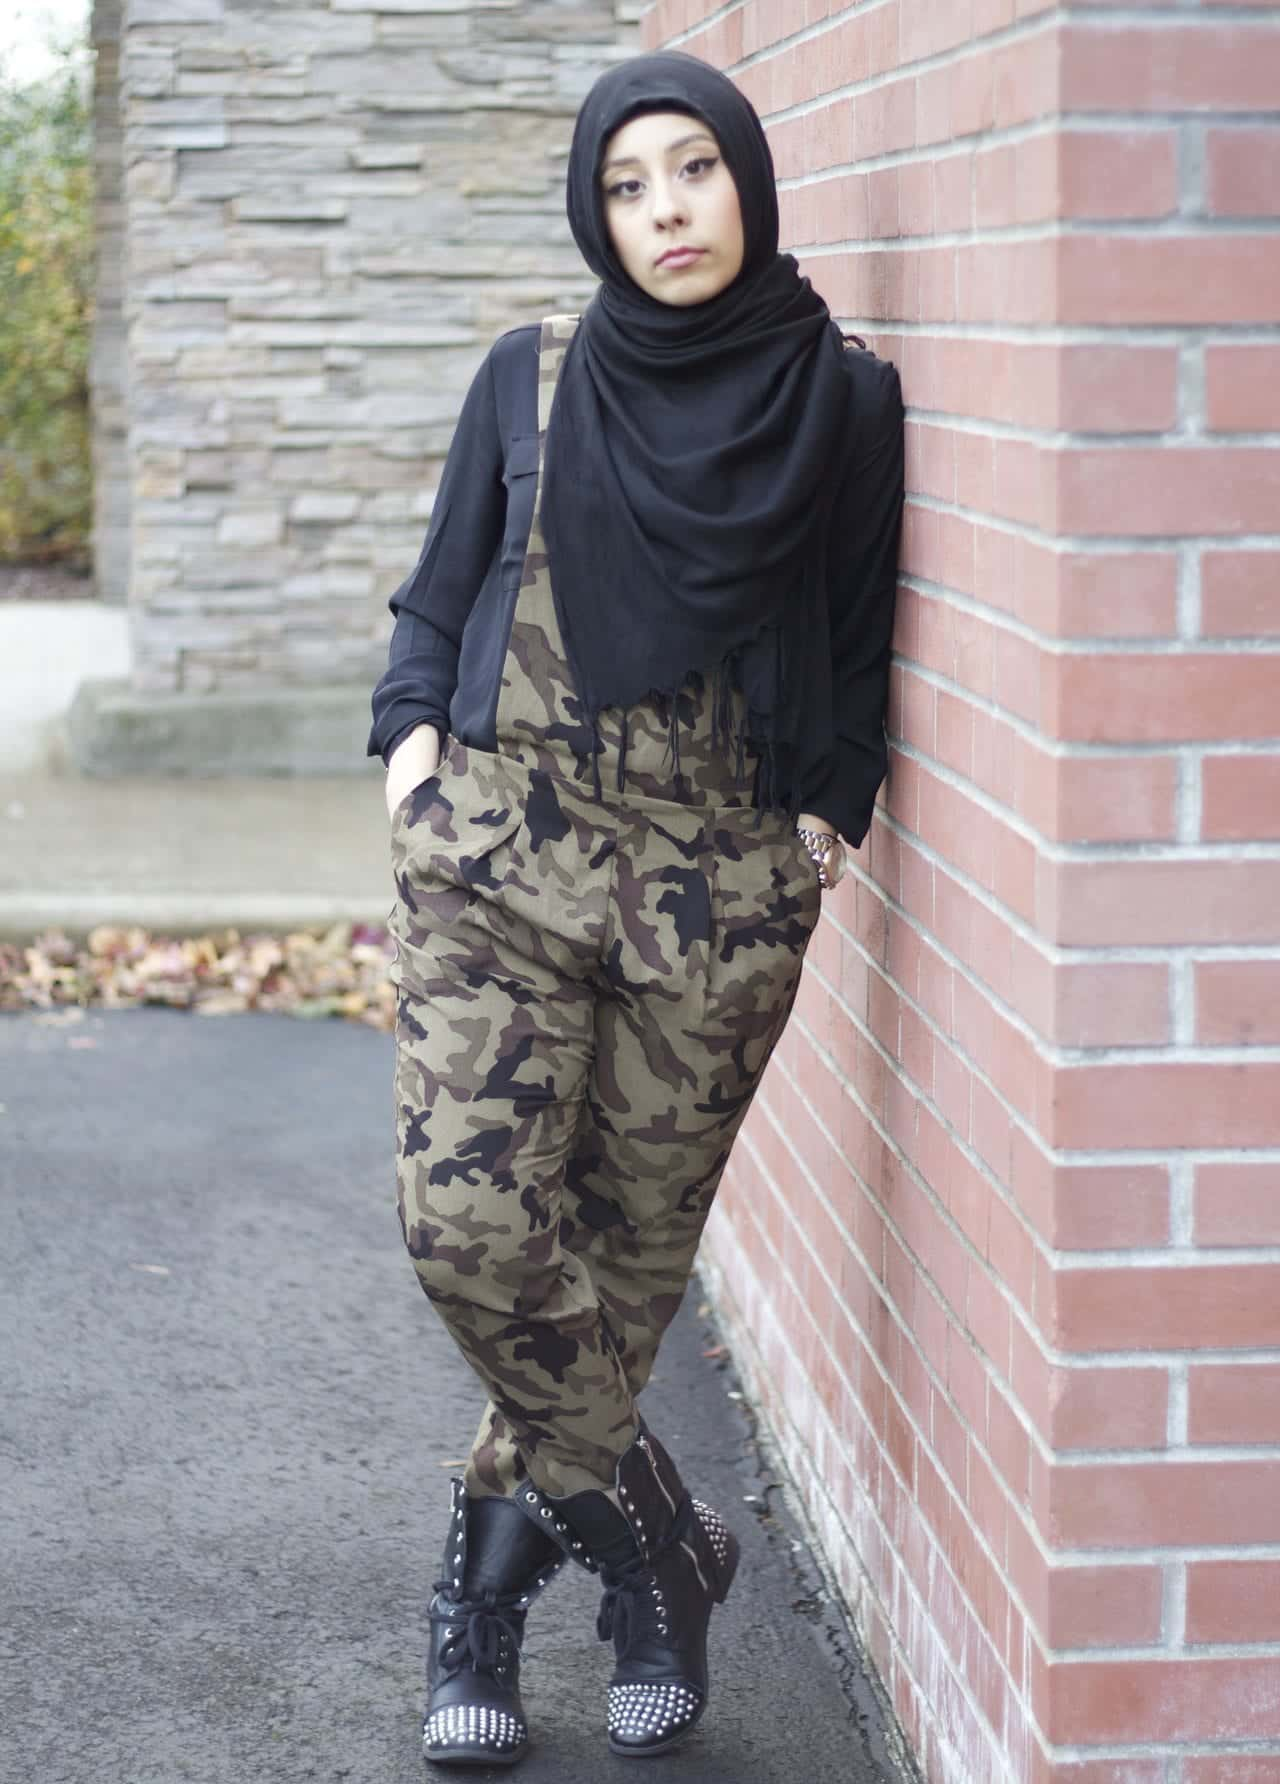 hijab-style-SIGNATUREINGOLD-camo Hijab Swag Style-20 Ways to Dress for a Swag Look With Hijab